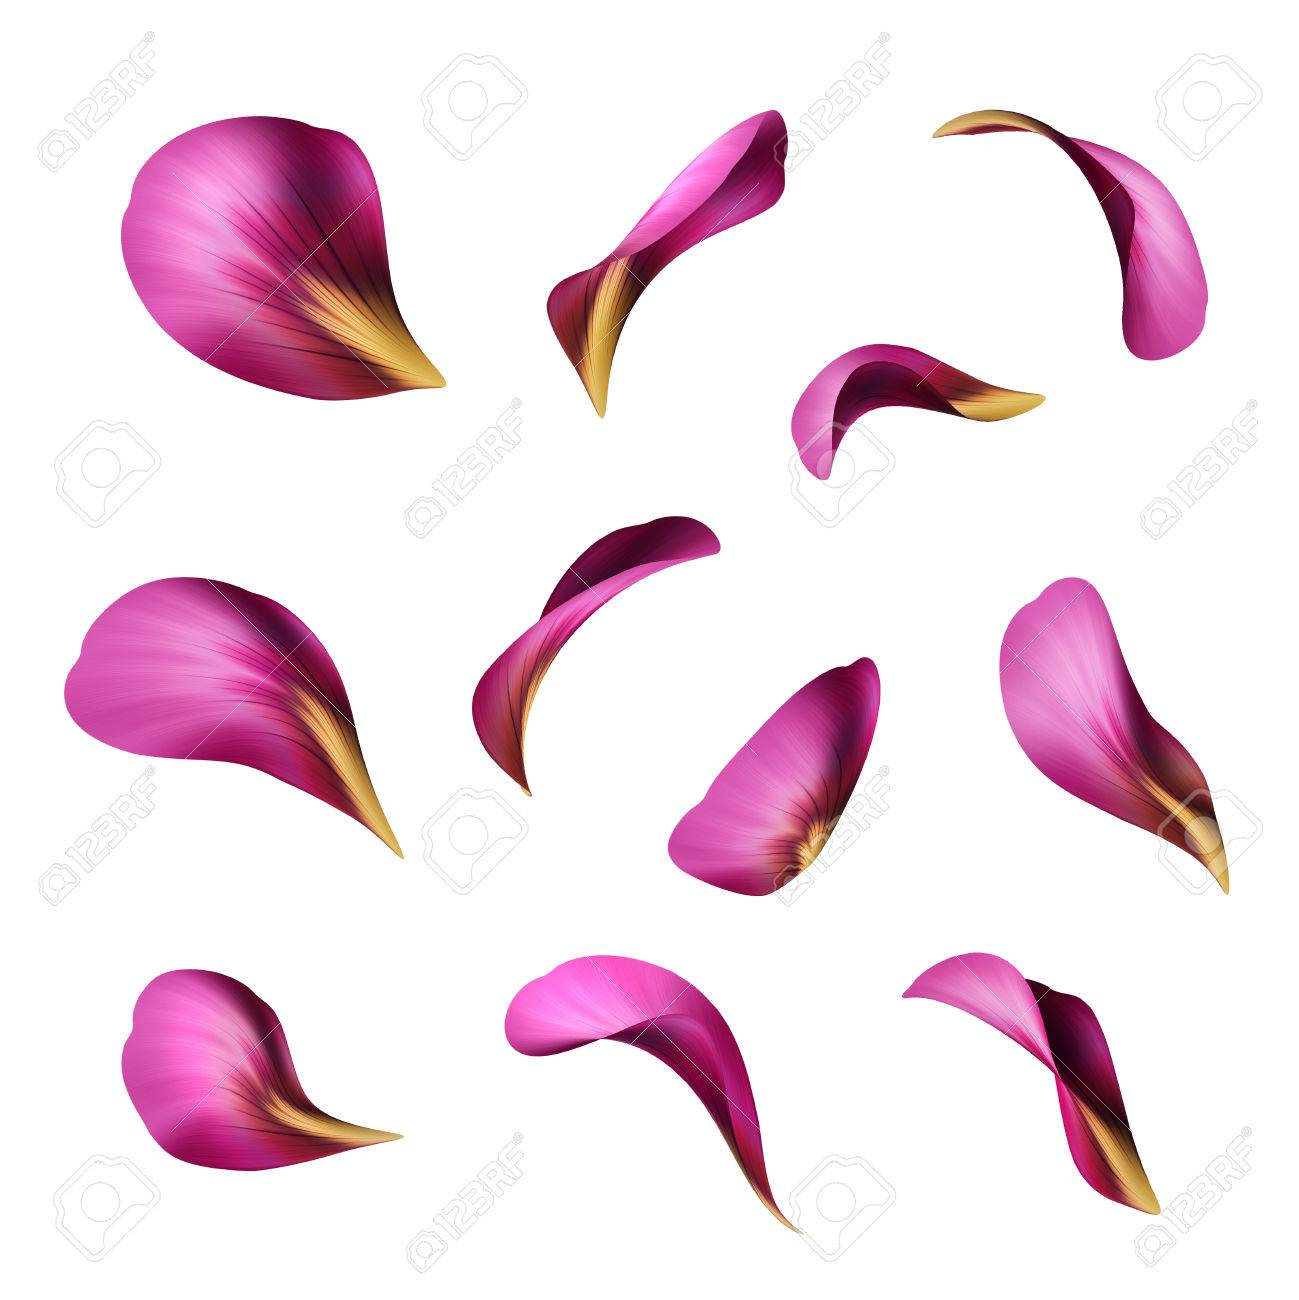 purple flower petals botanical illustration floral clip art rh 123rf com flower petal outline clipart flower petal clipart black and white